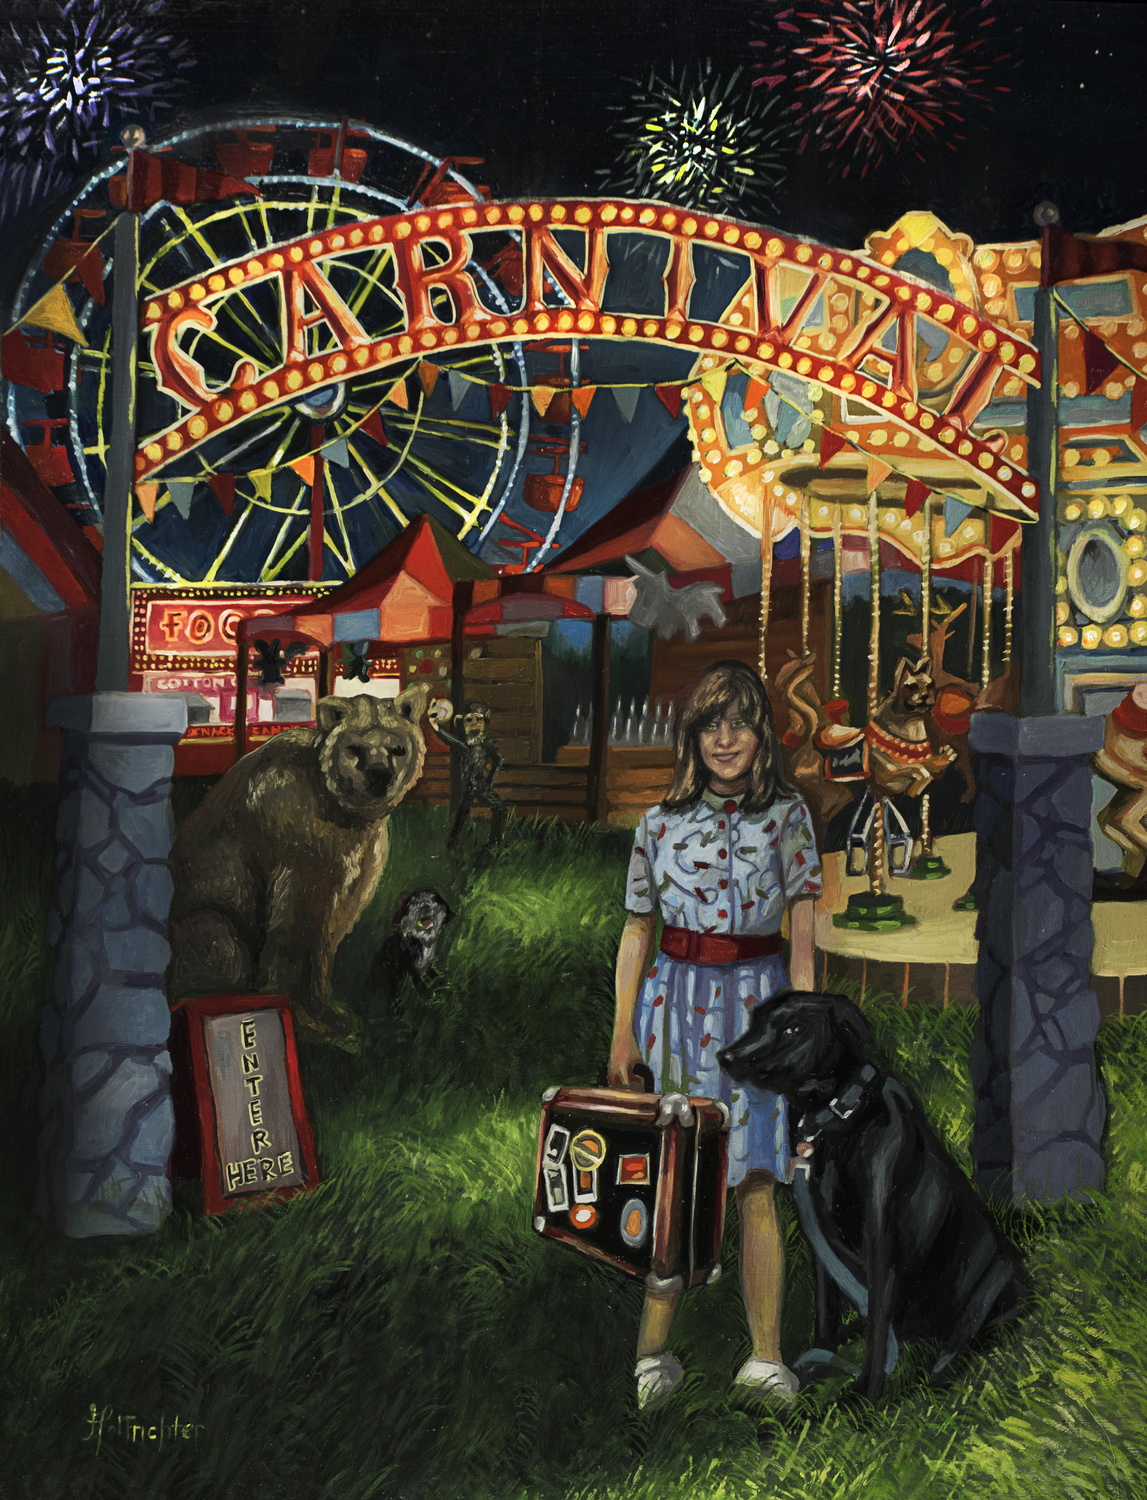 Kathy Joins the Carnival Artwork by David Hoffrichter